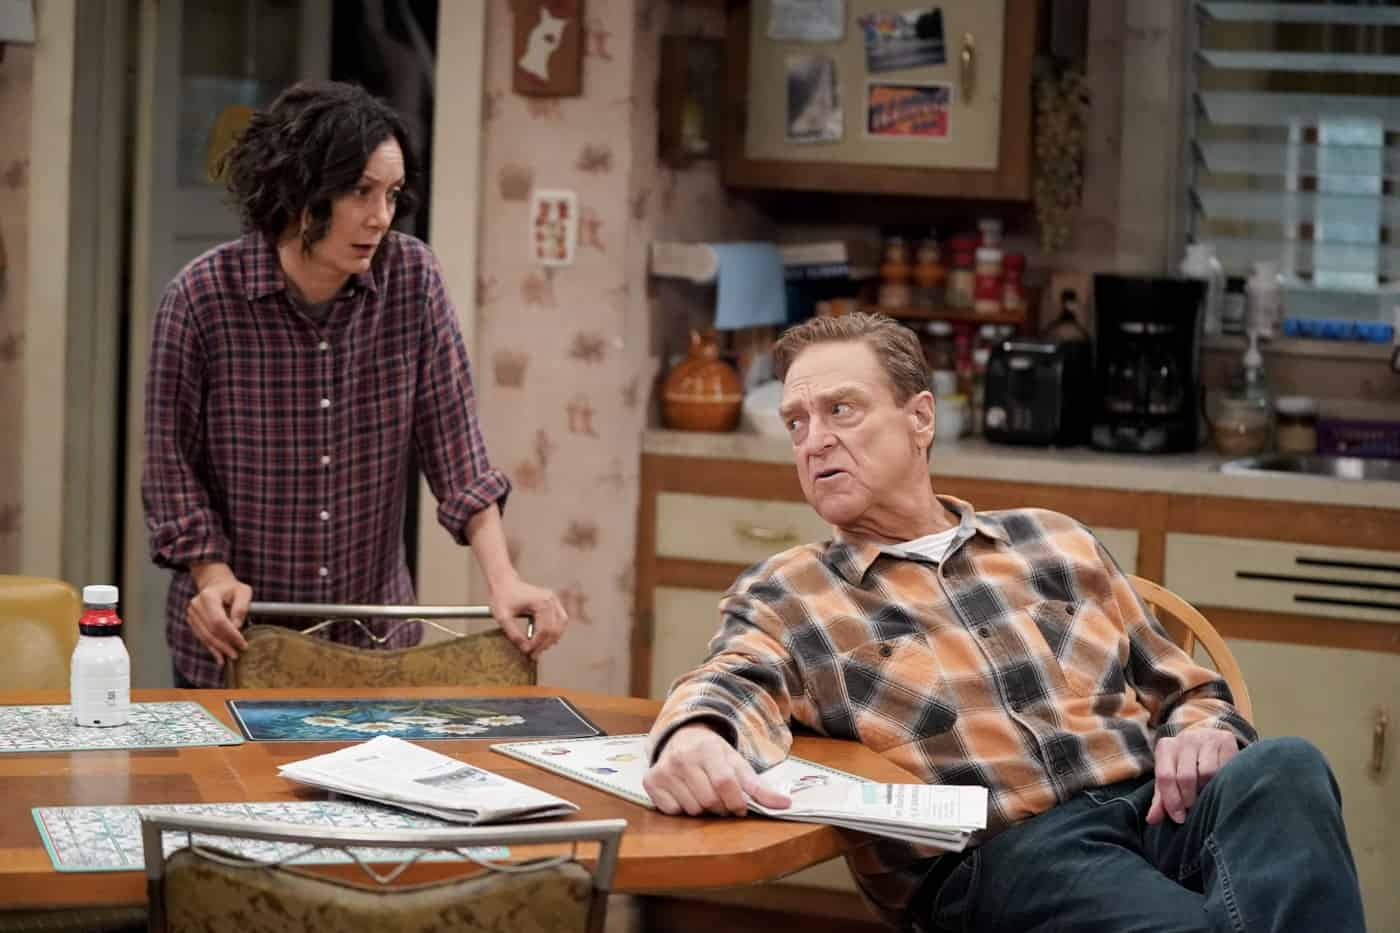 """THE CONNERS Season 4 Episode 4 - """"The Wedding of Dan and Louise"""" – It's Dan and Louise's wedding day, but it's a far-from-perfect walk down the aisle, especially when a weather report forecasts that a tornado is headed for Lanford creating chaos and surprises on """"The Conners,"""" WEDNESDAY, OCT. 13 (9:00-9:31 p.m. EDT), on ABC. (ABC/Eric McCandless) SARA GILBERT, JOHN GOODMAN"""